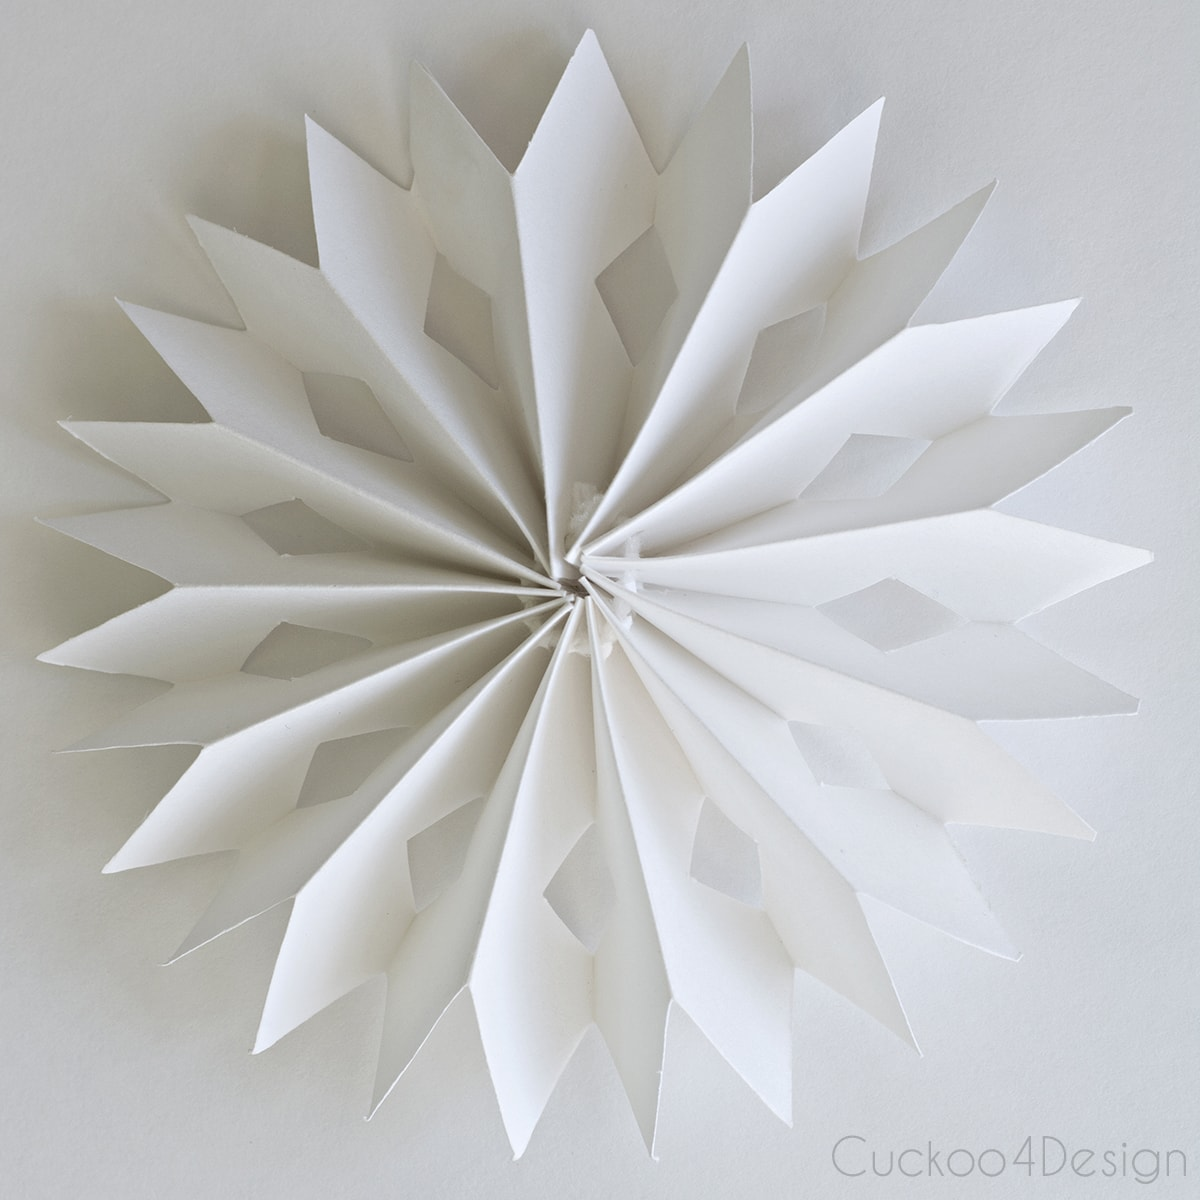 diy_cardboard_snowflake_ornament_cuckoo4design_3